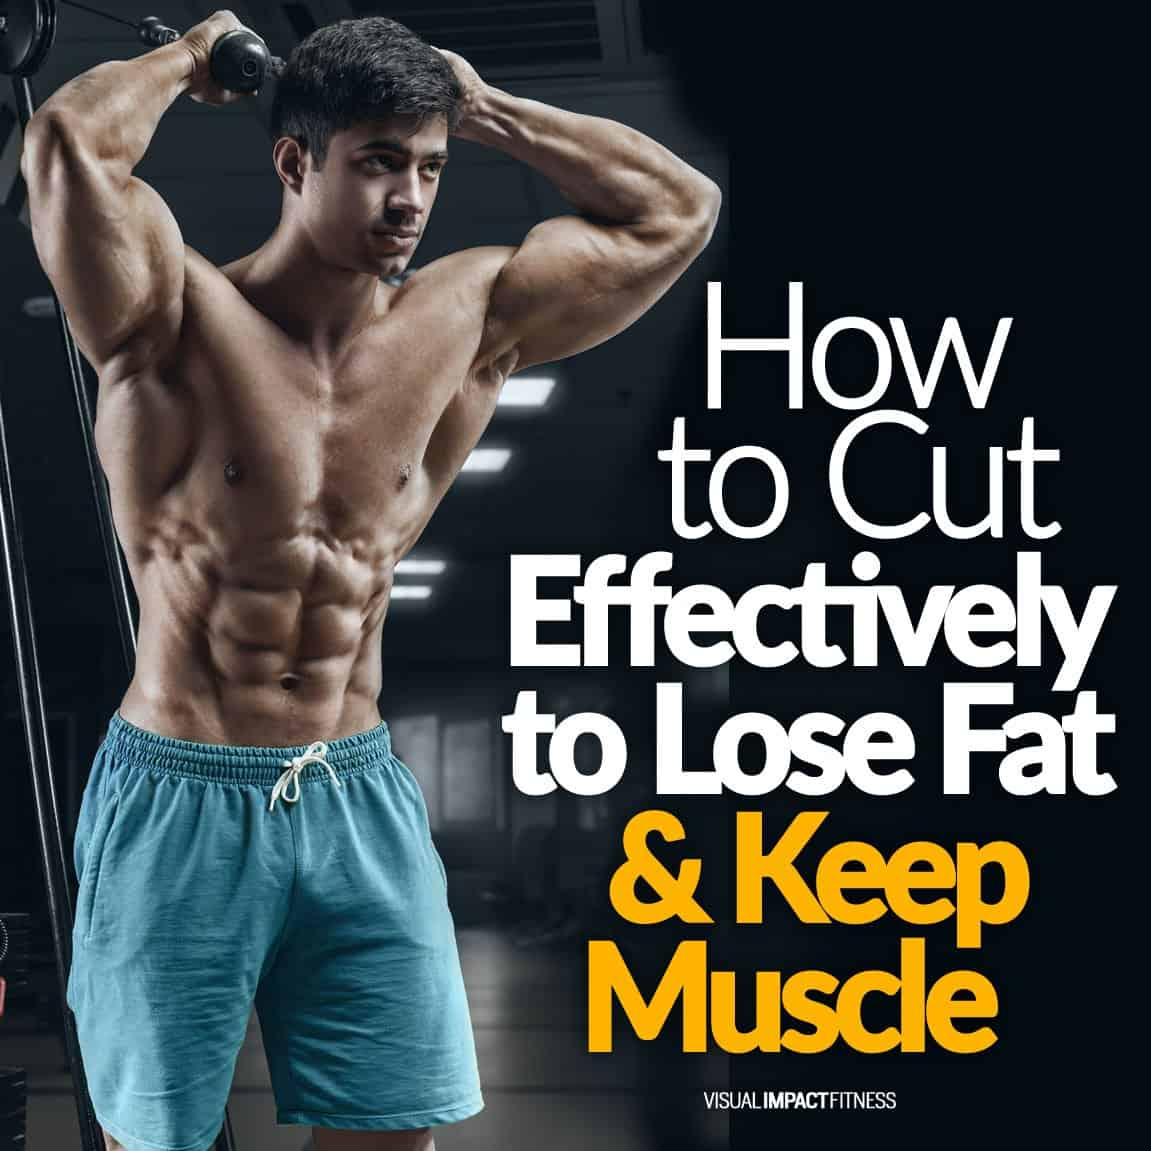 How To Cut Effectively to Lose Fat & Keep Muscle